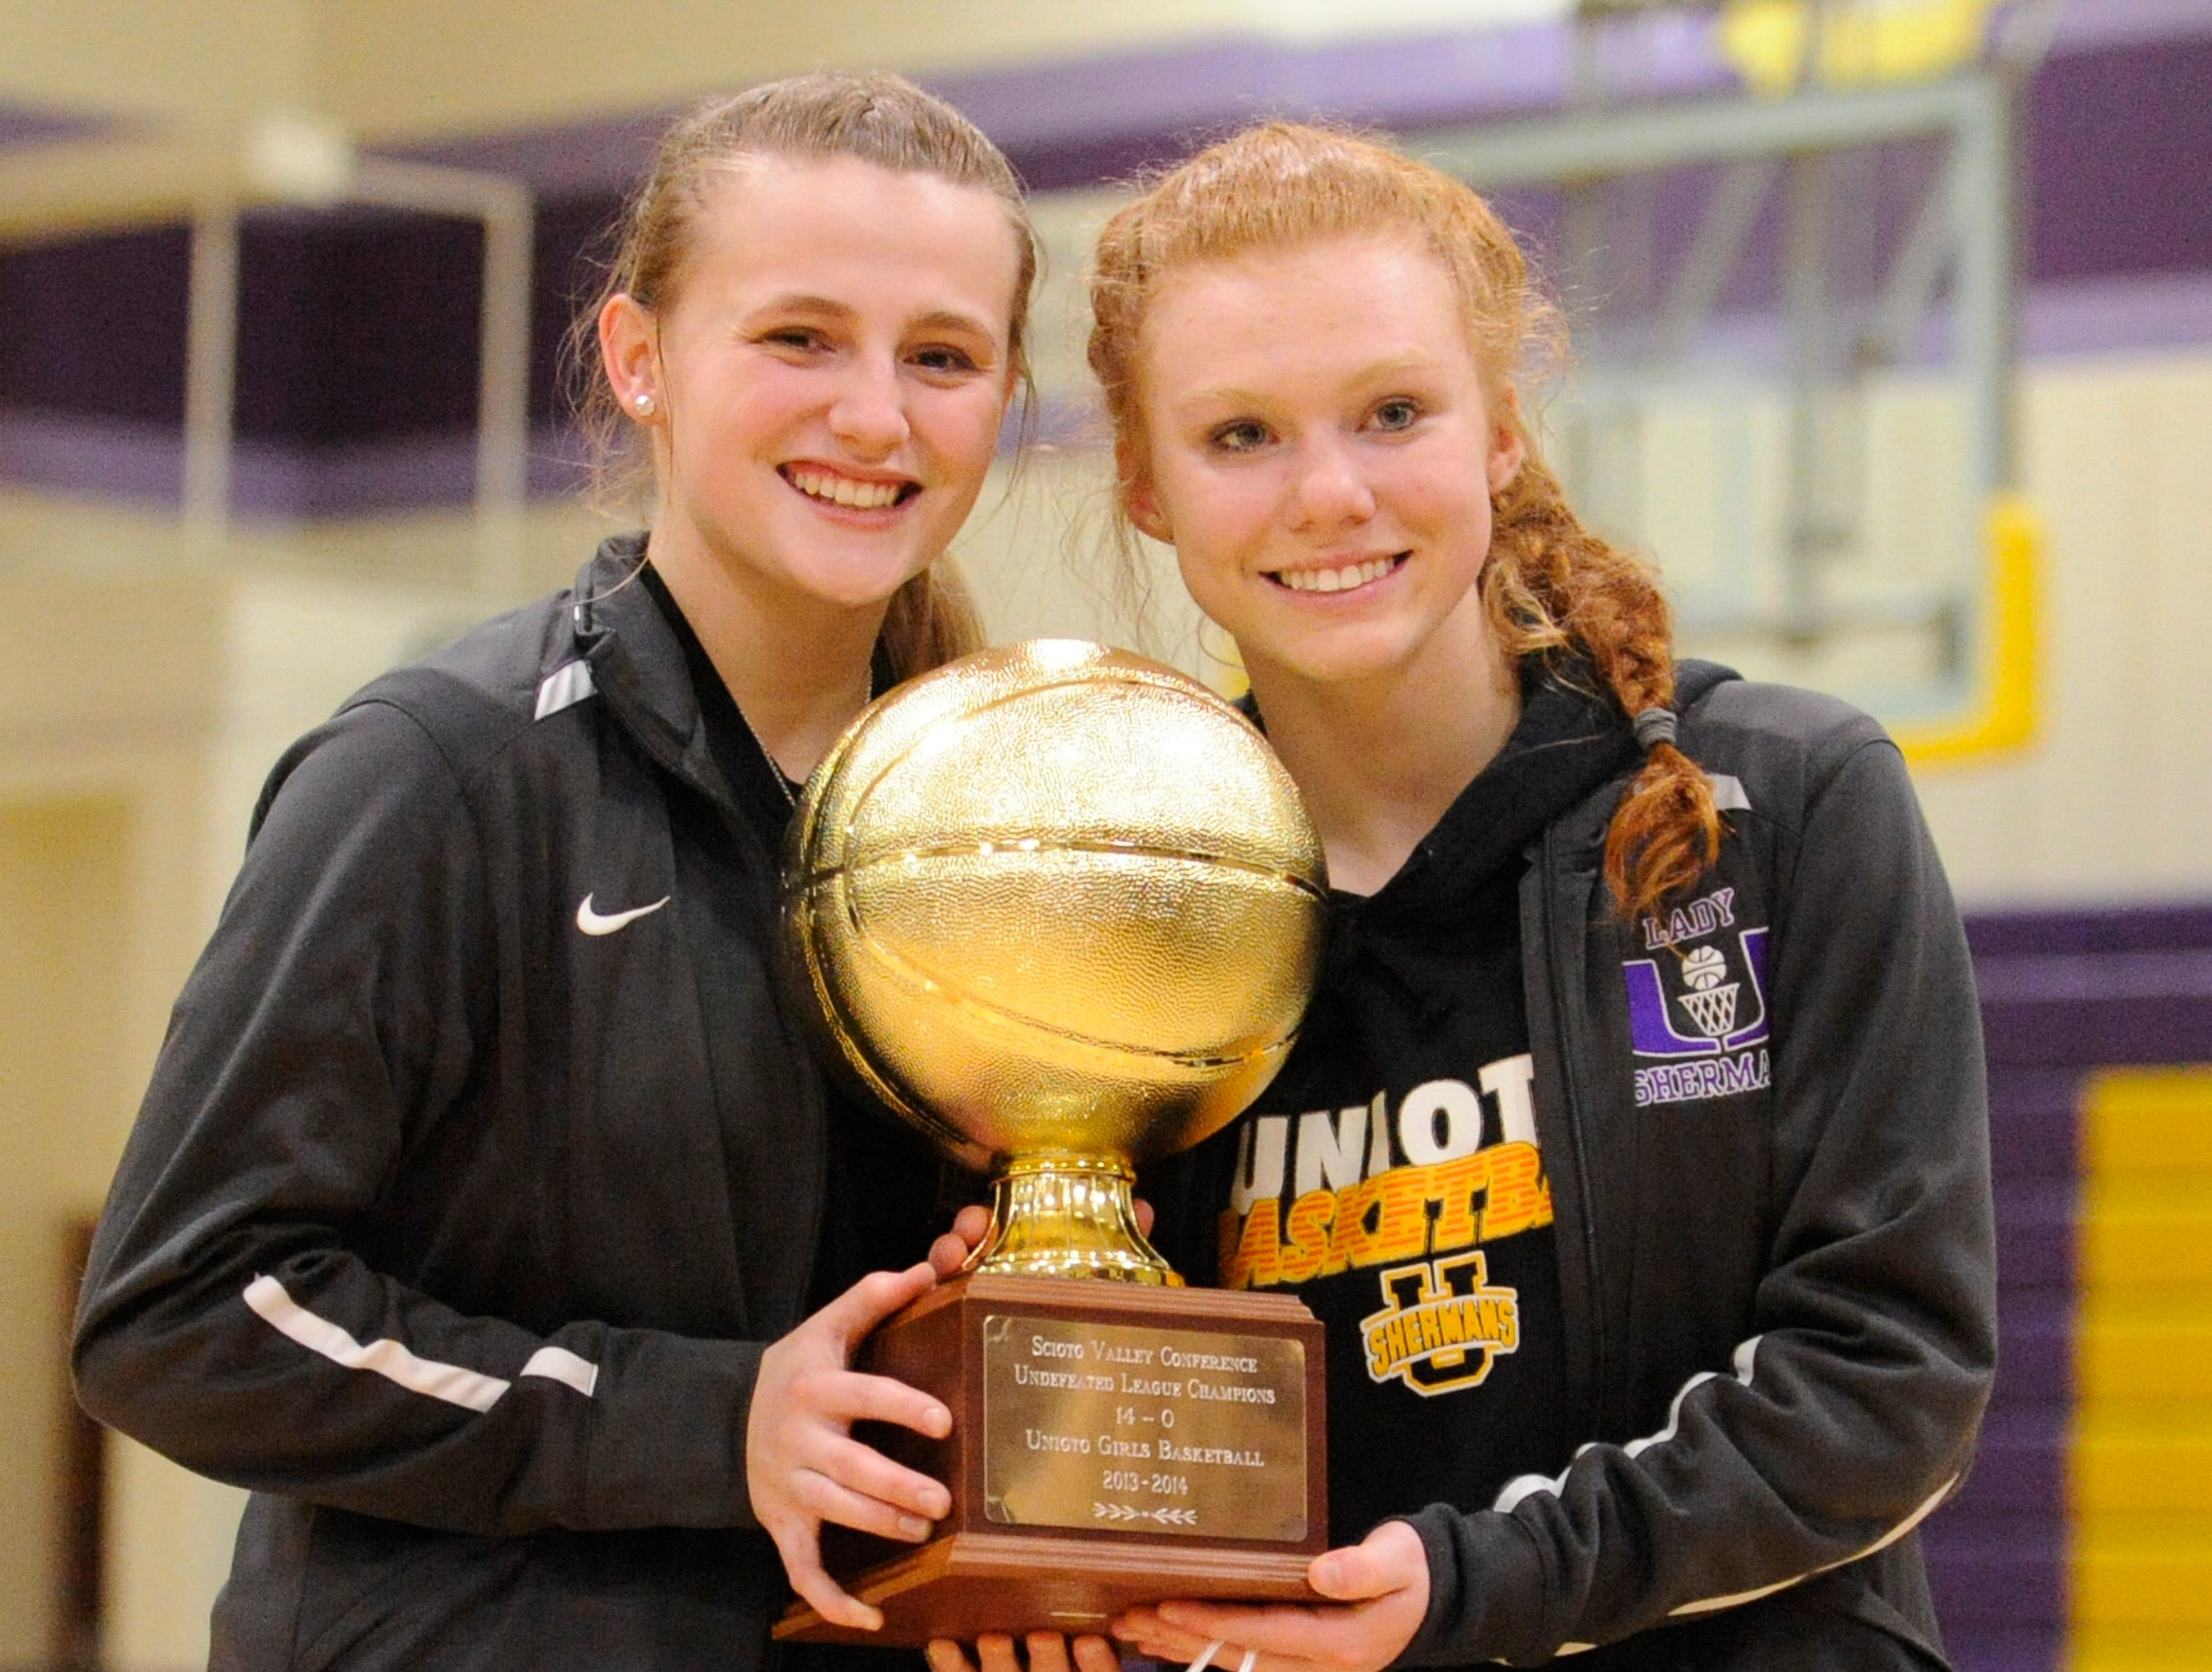 Unioto defeated Southeastern Thursday night 47-20 at Southeastern High School to clench the SVC gold ball for the 2018-2019 basketball season.